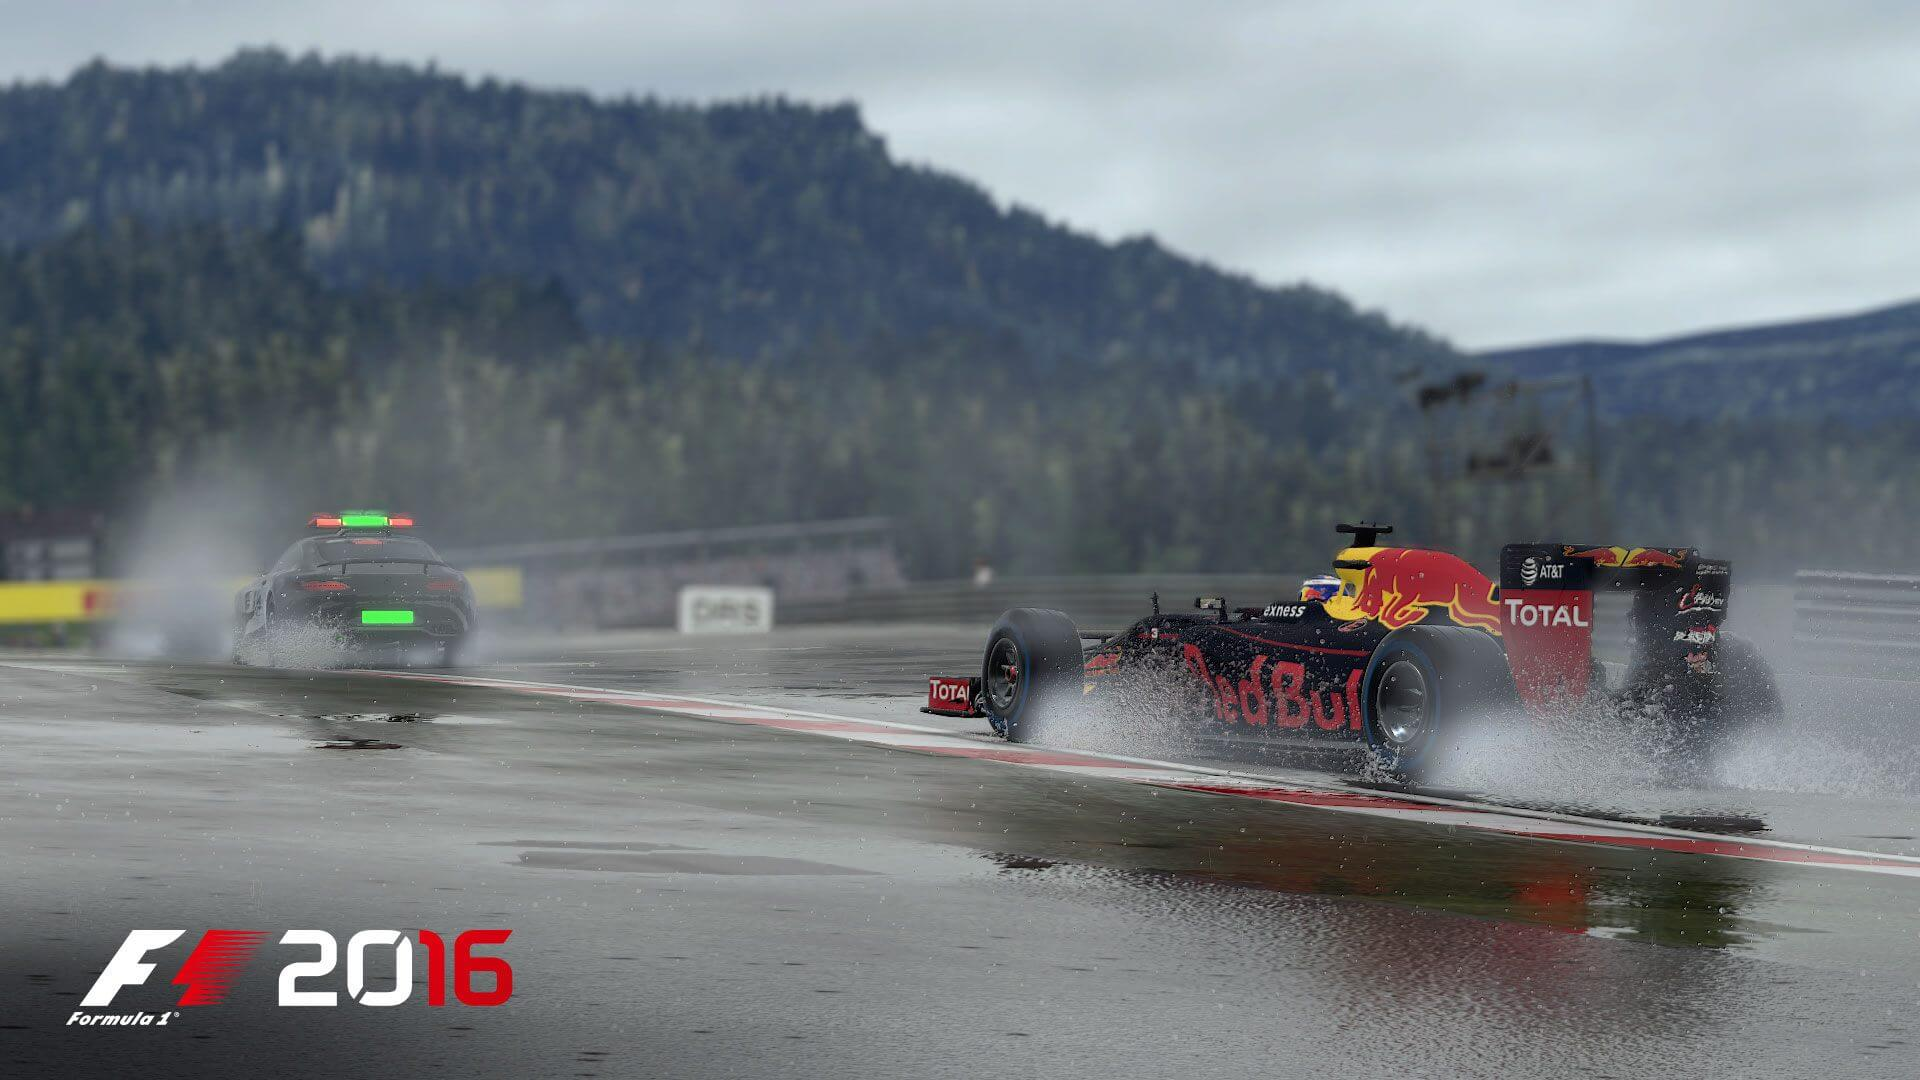 F1 2016: Das Safety-Car sichert die Rennstrecke (Bildrechte: Feral Interactive)